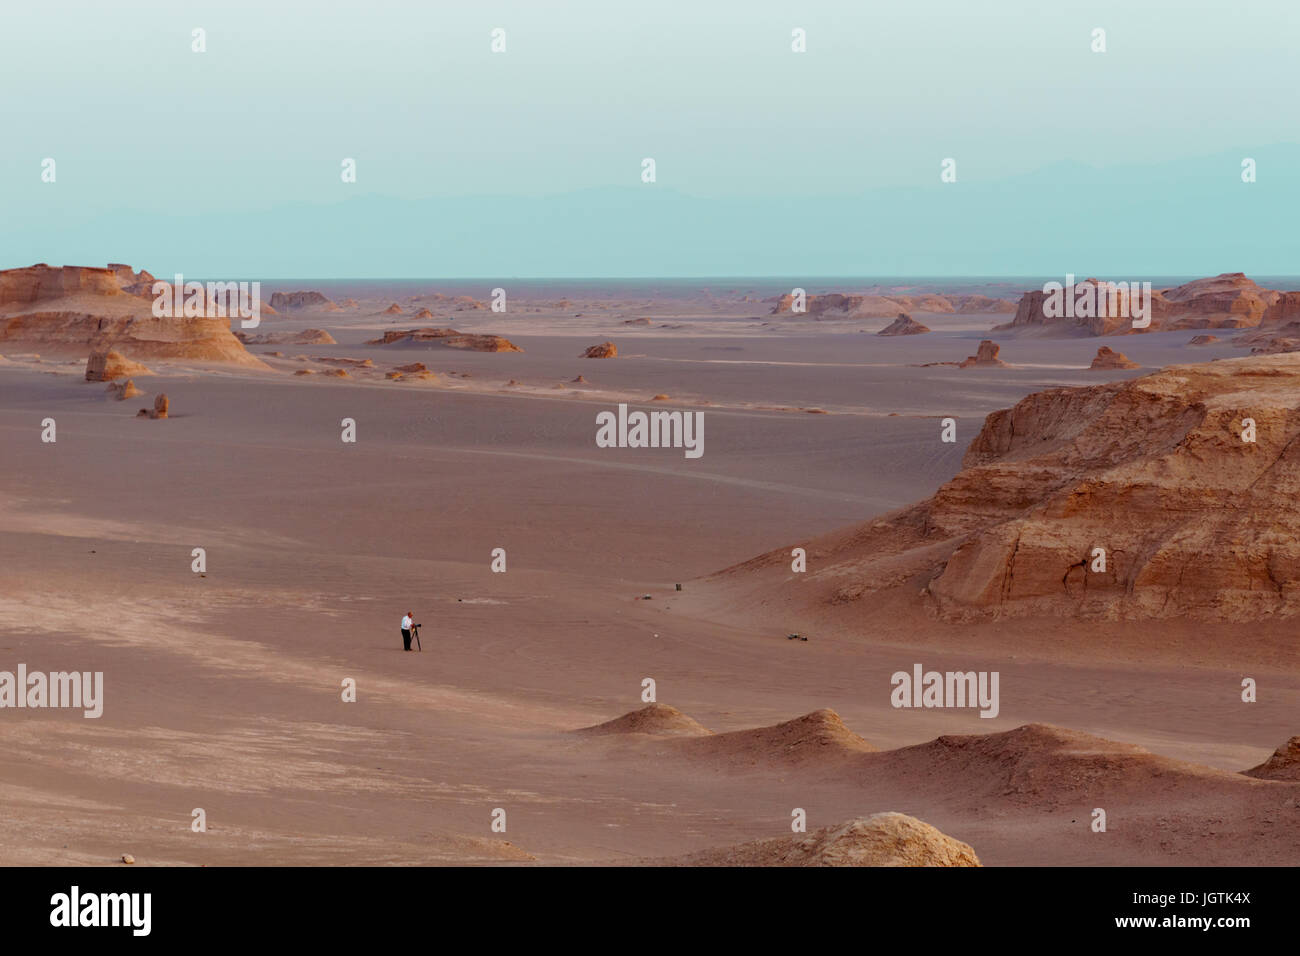 Kaluts in Lut desert in Iran also known as dashte lut , Kerman - Stock Image